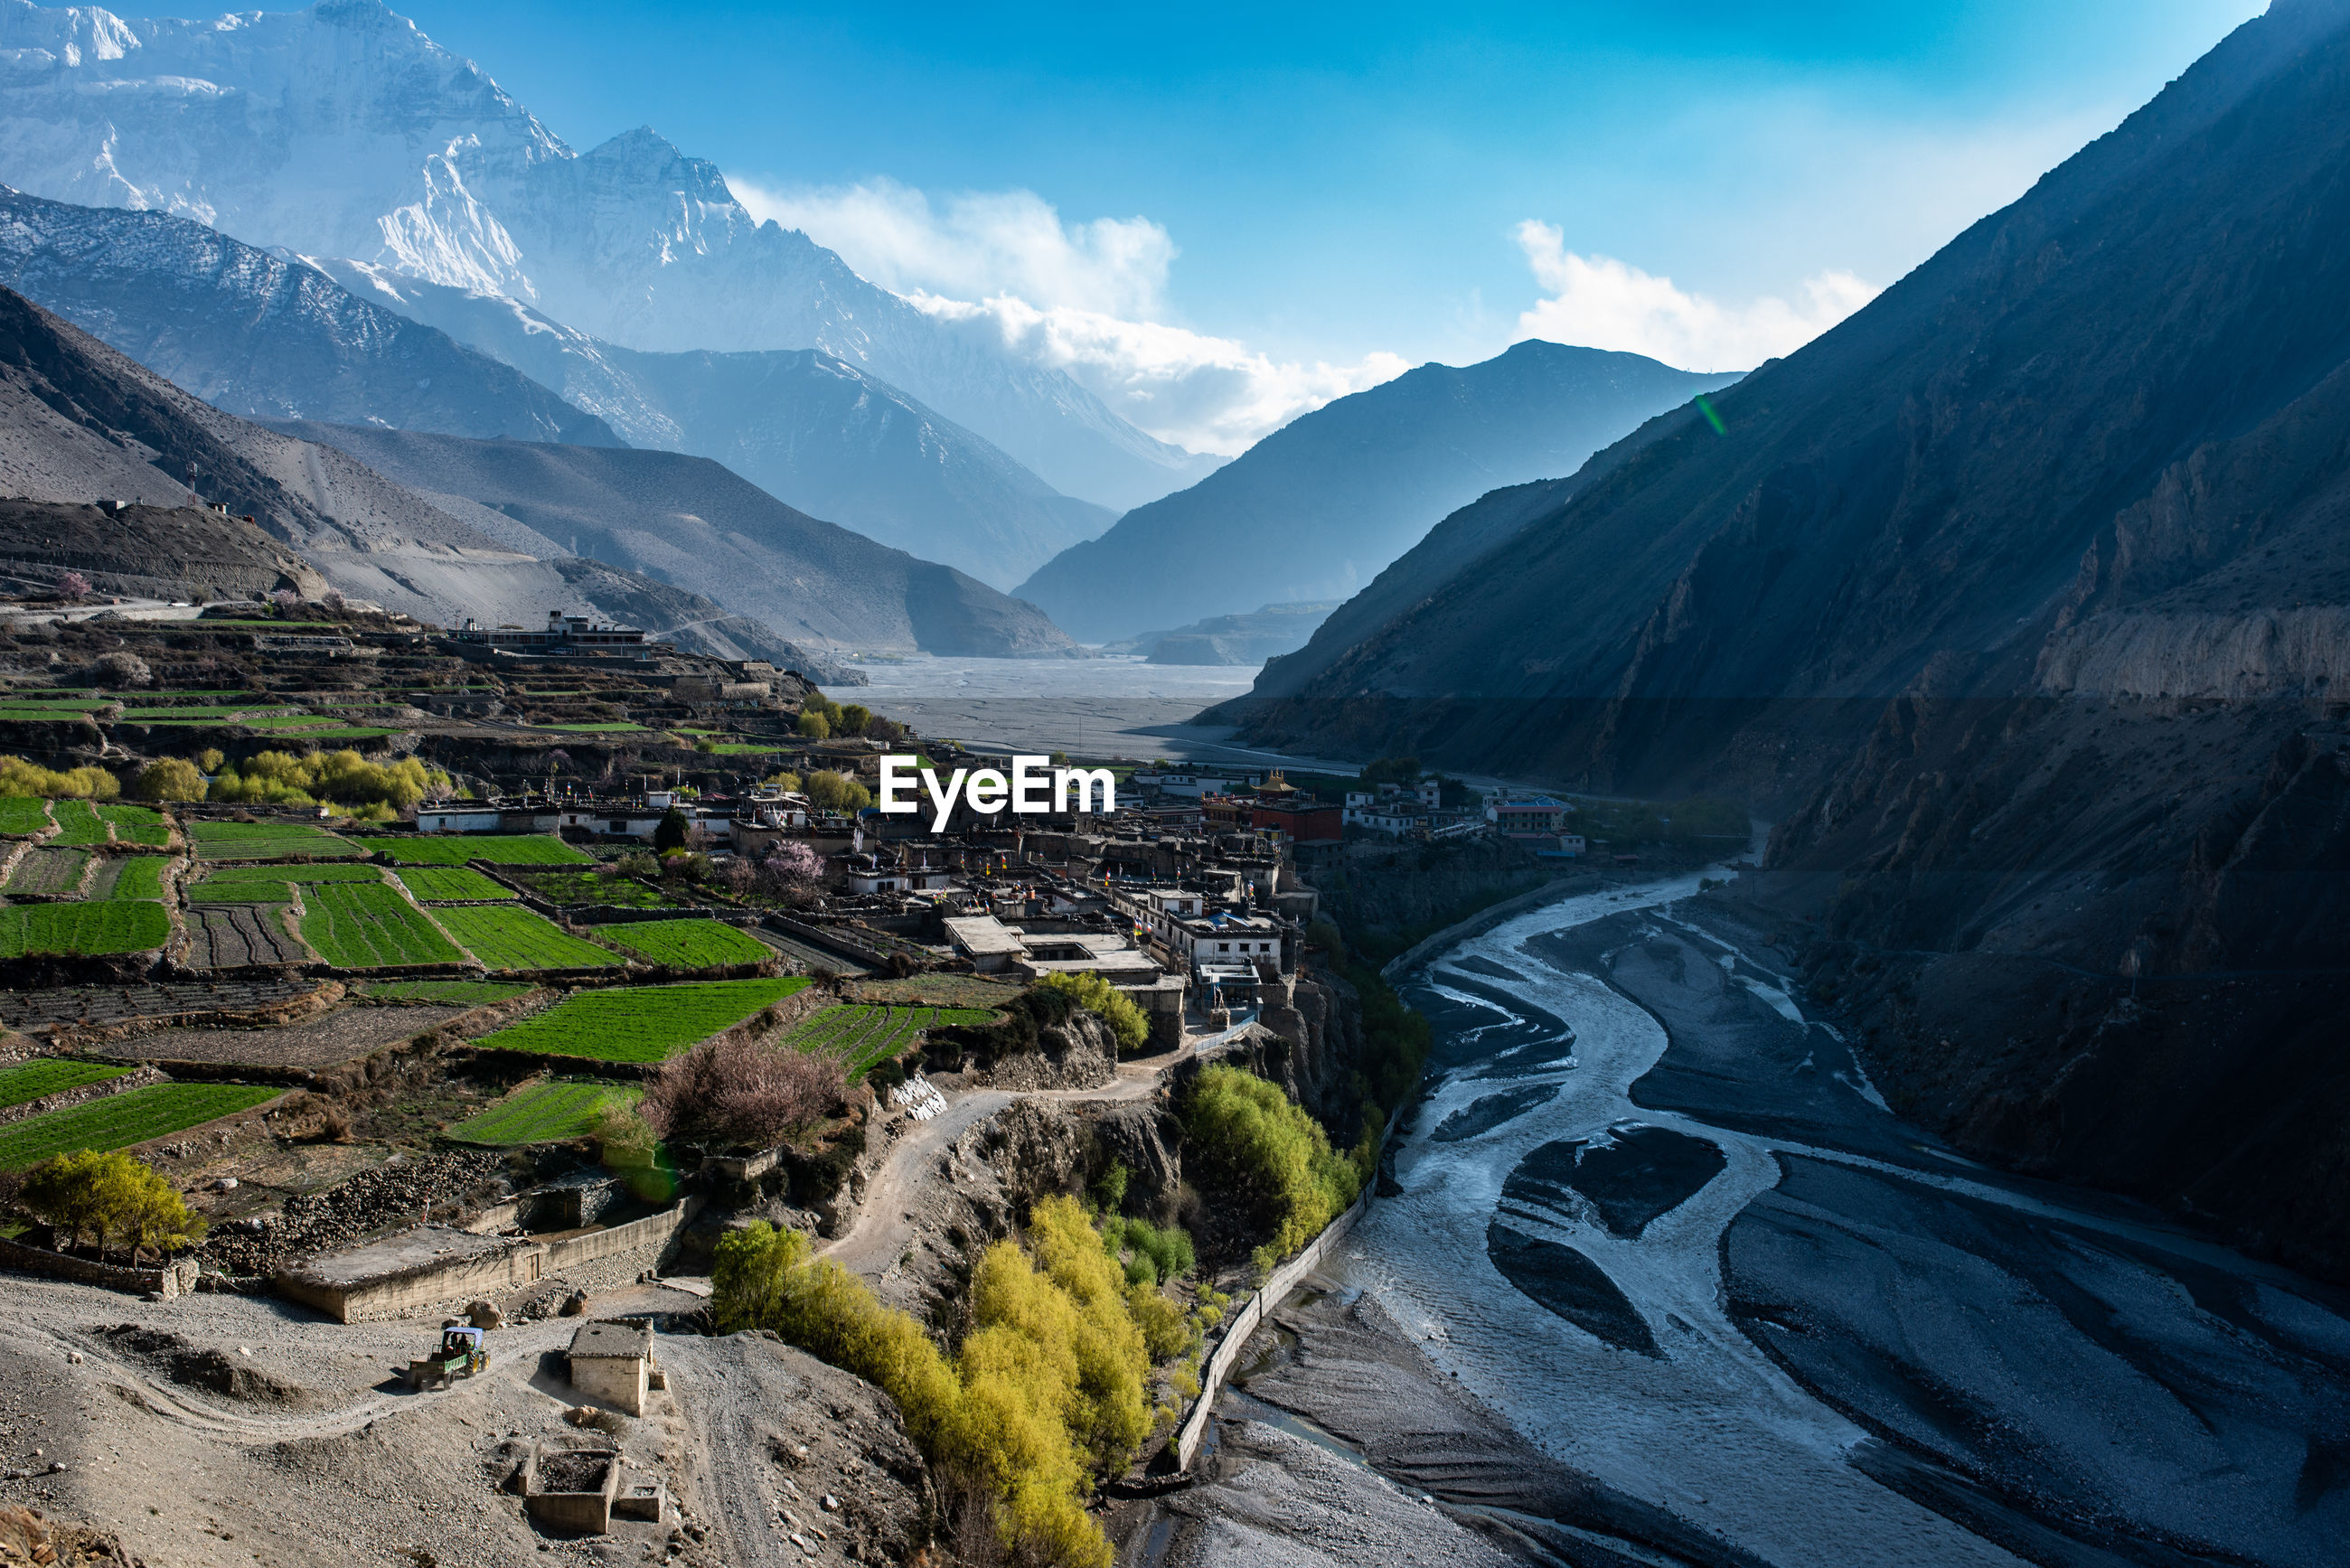 Scenic view of mountains in town against sky